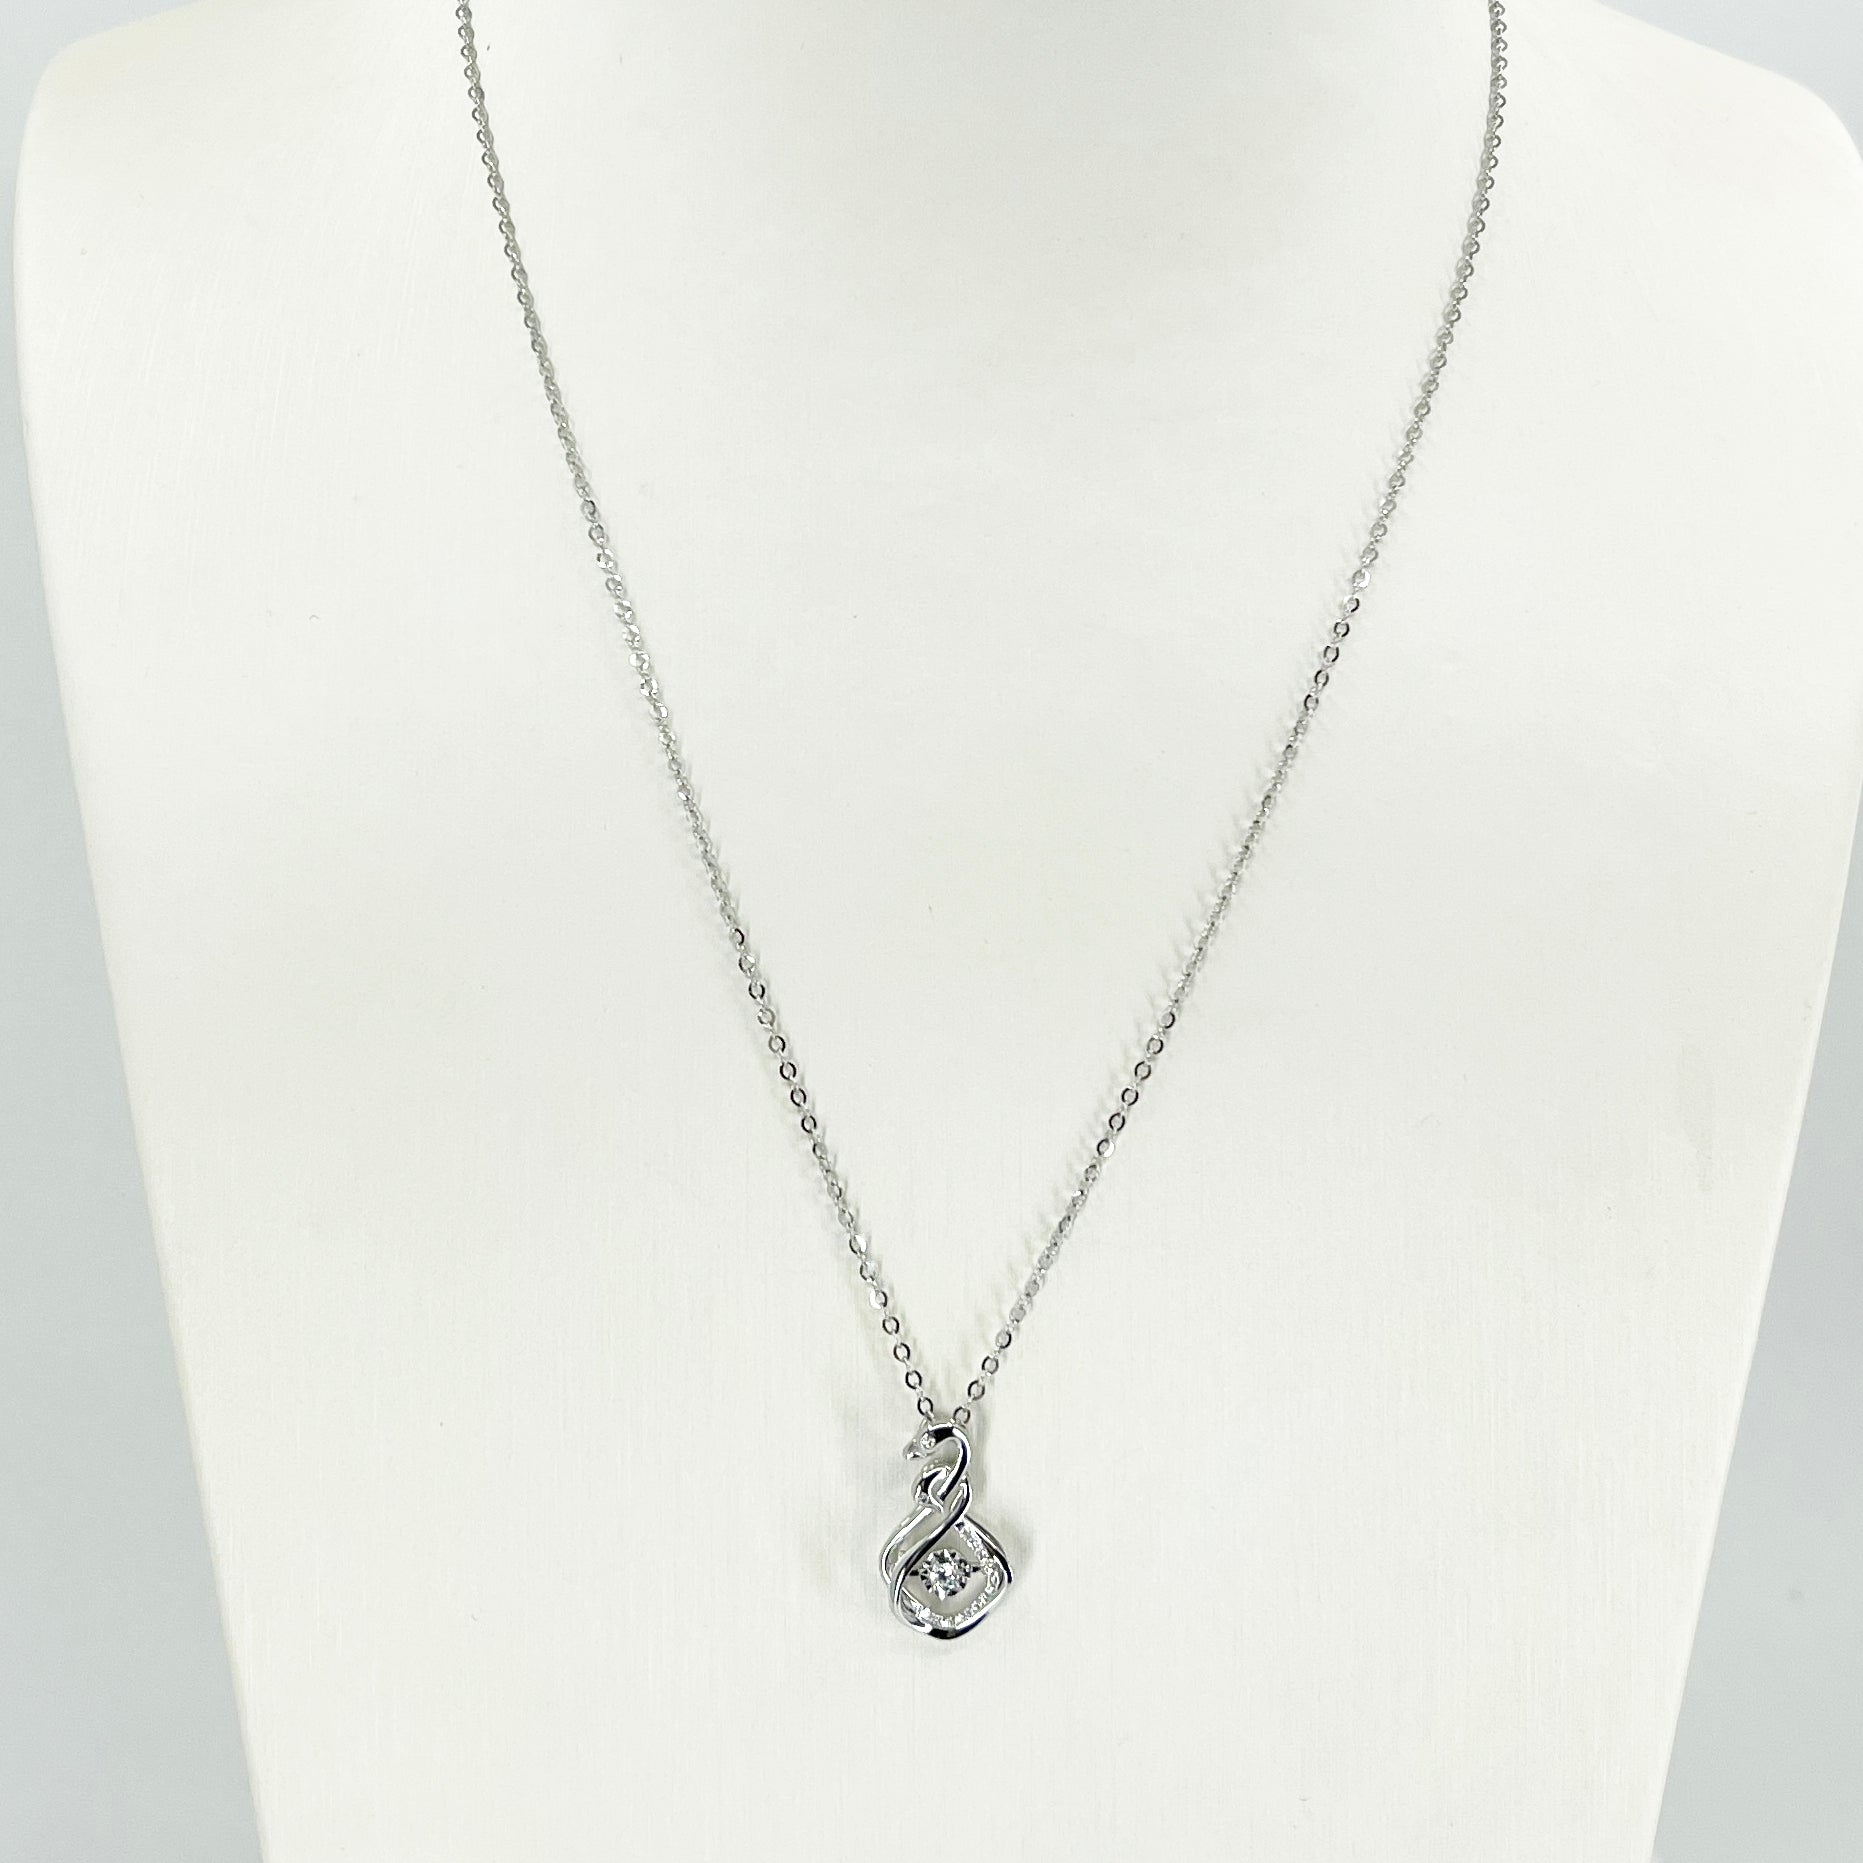 "18K Solid White Gold Round Link Chain Necklace with Diamond Swan Pendant 16"" - 18"" D0.082CT"